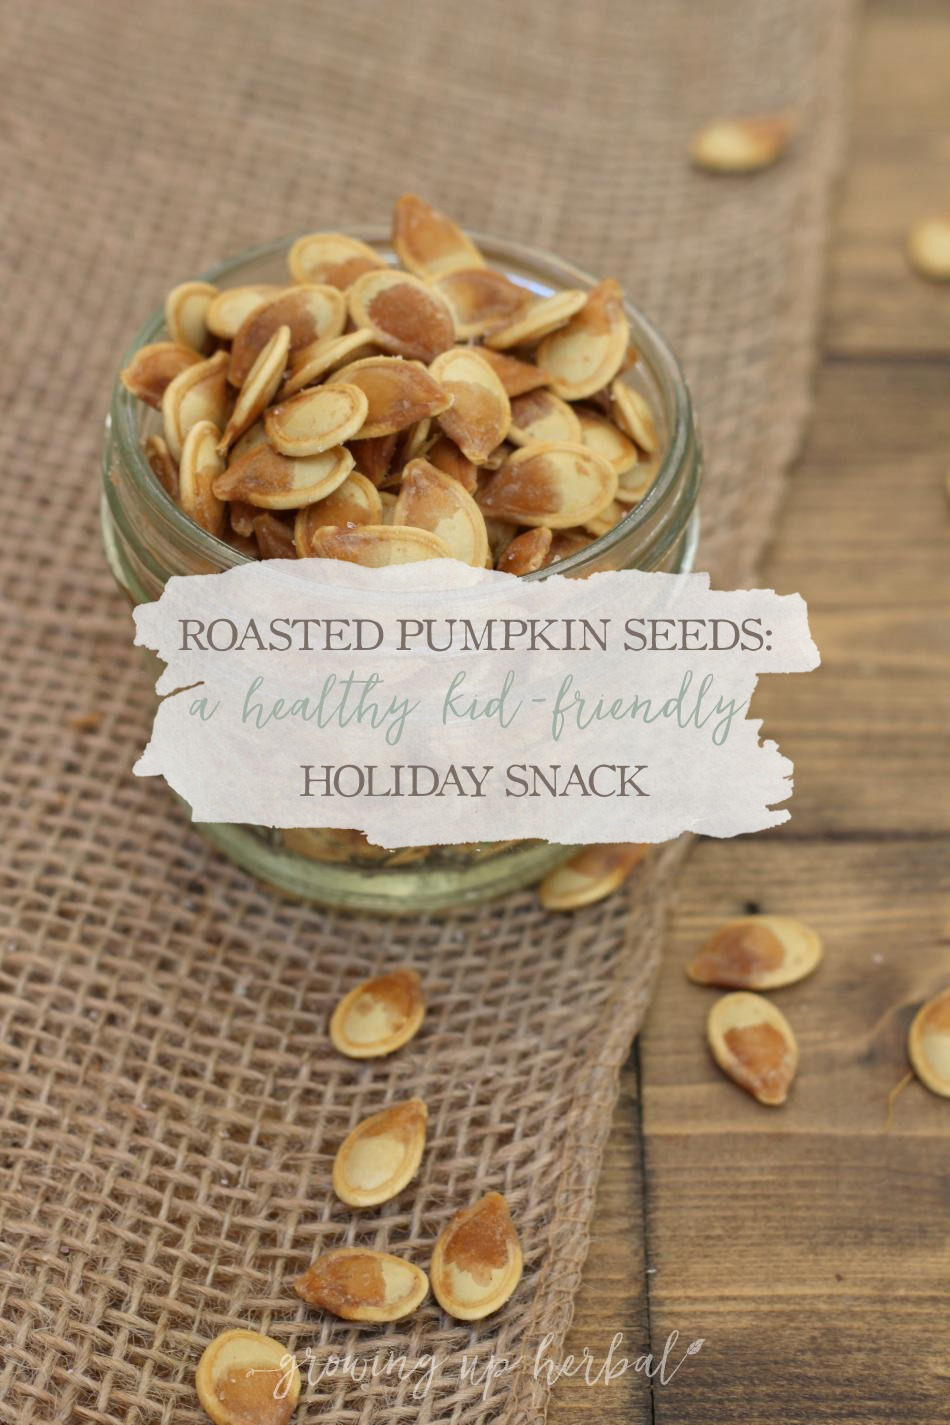 Roasted Pumpkin Seed Spice Blends | Growing Up Herbal | 4 ways to season your holiday pumpkin seeds.